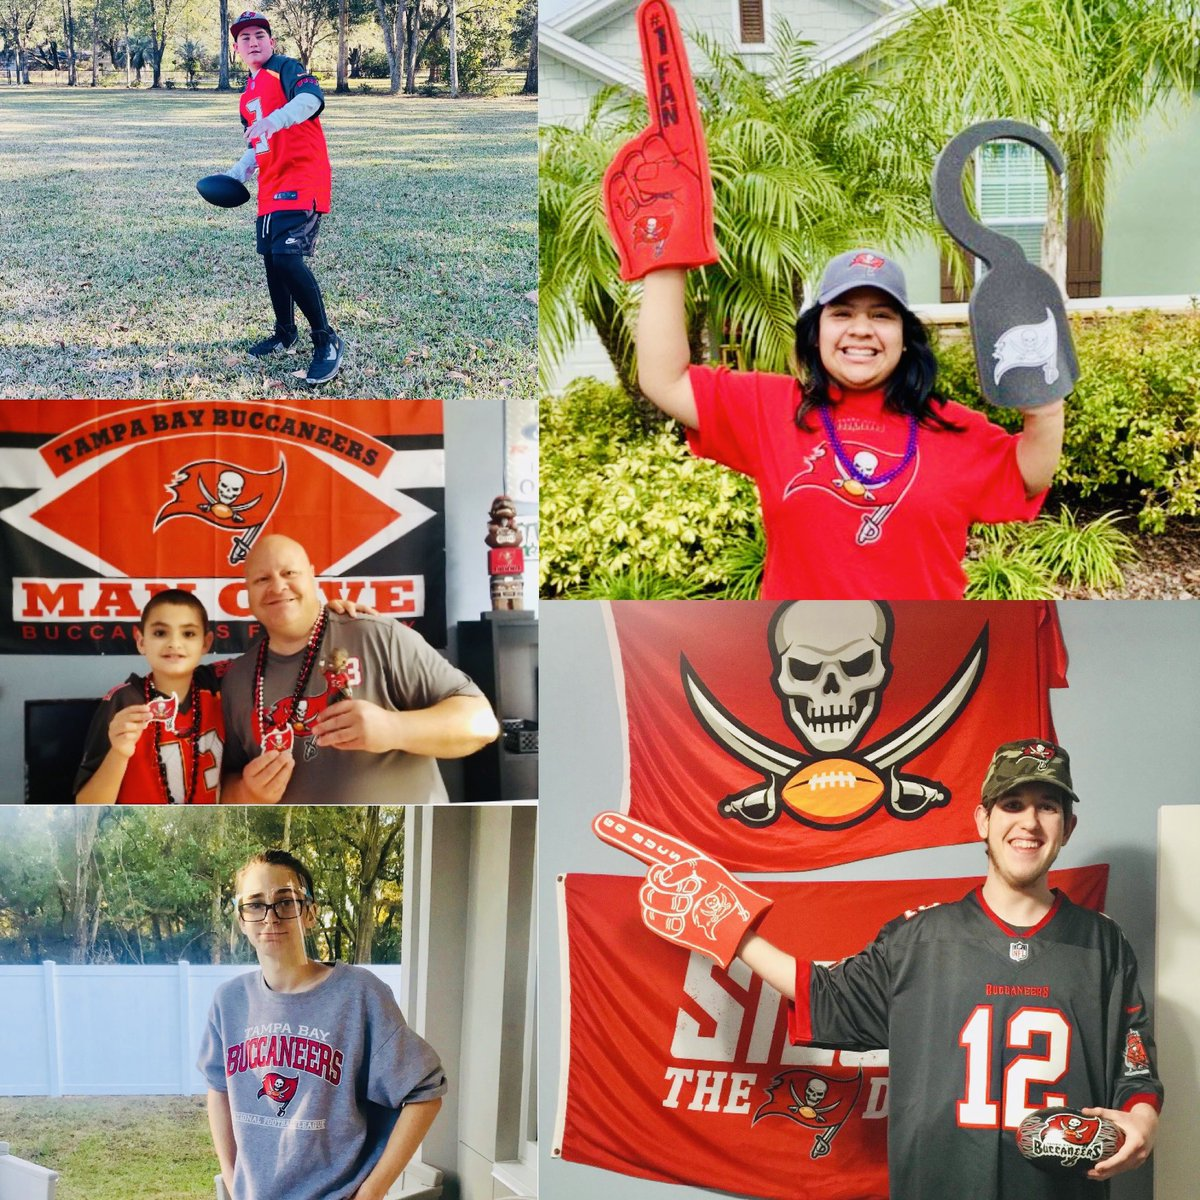 IT'S GAME DAY! 🏈🏴‍☠️   We're cheering on our @Buccaneers! One more WIN until the Super Bowl! Good luck, boys!! ❤️☠️🖤 @FloridaFUTP60   #RaiseTheFlags #GoBucs  #FuelGreatness